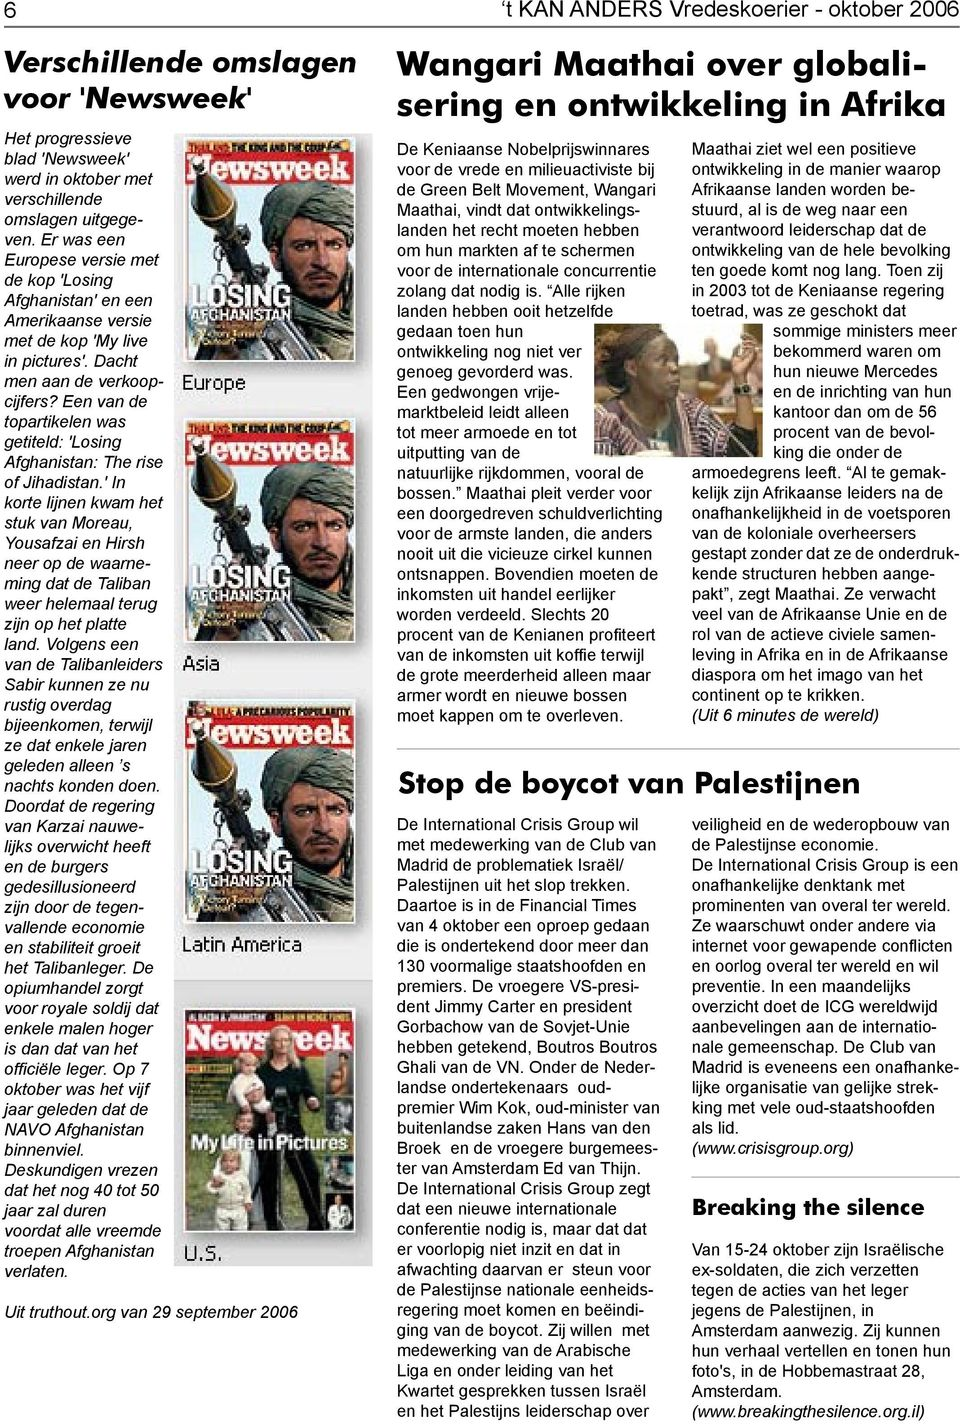 Een van de topartikelen was getiteld: 'Losing Afghanistan: The rise of Jihadistan.